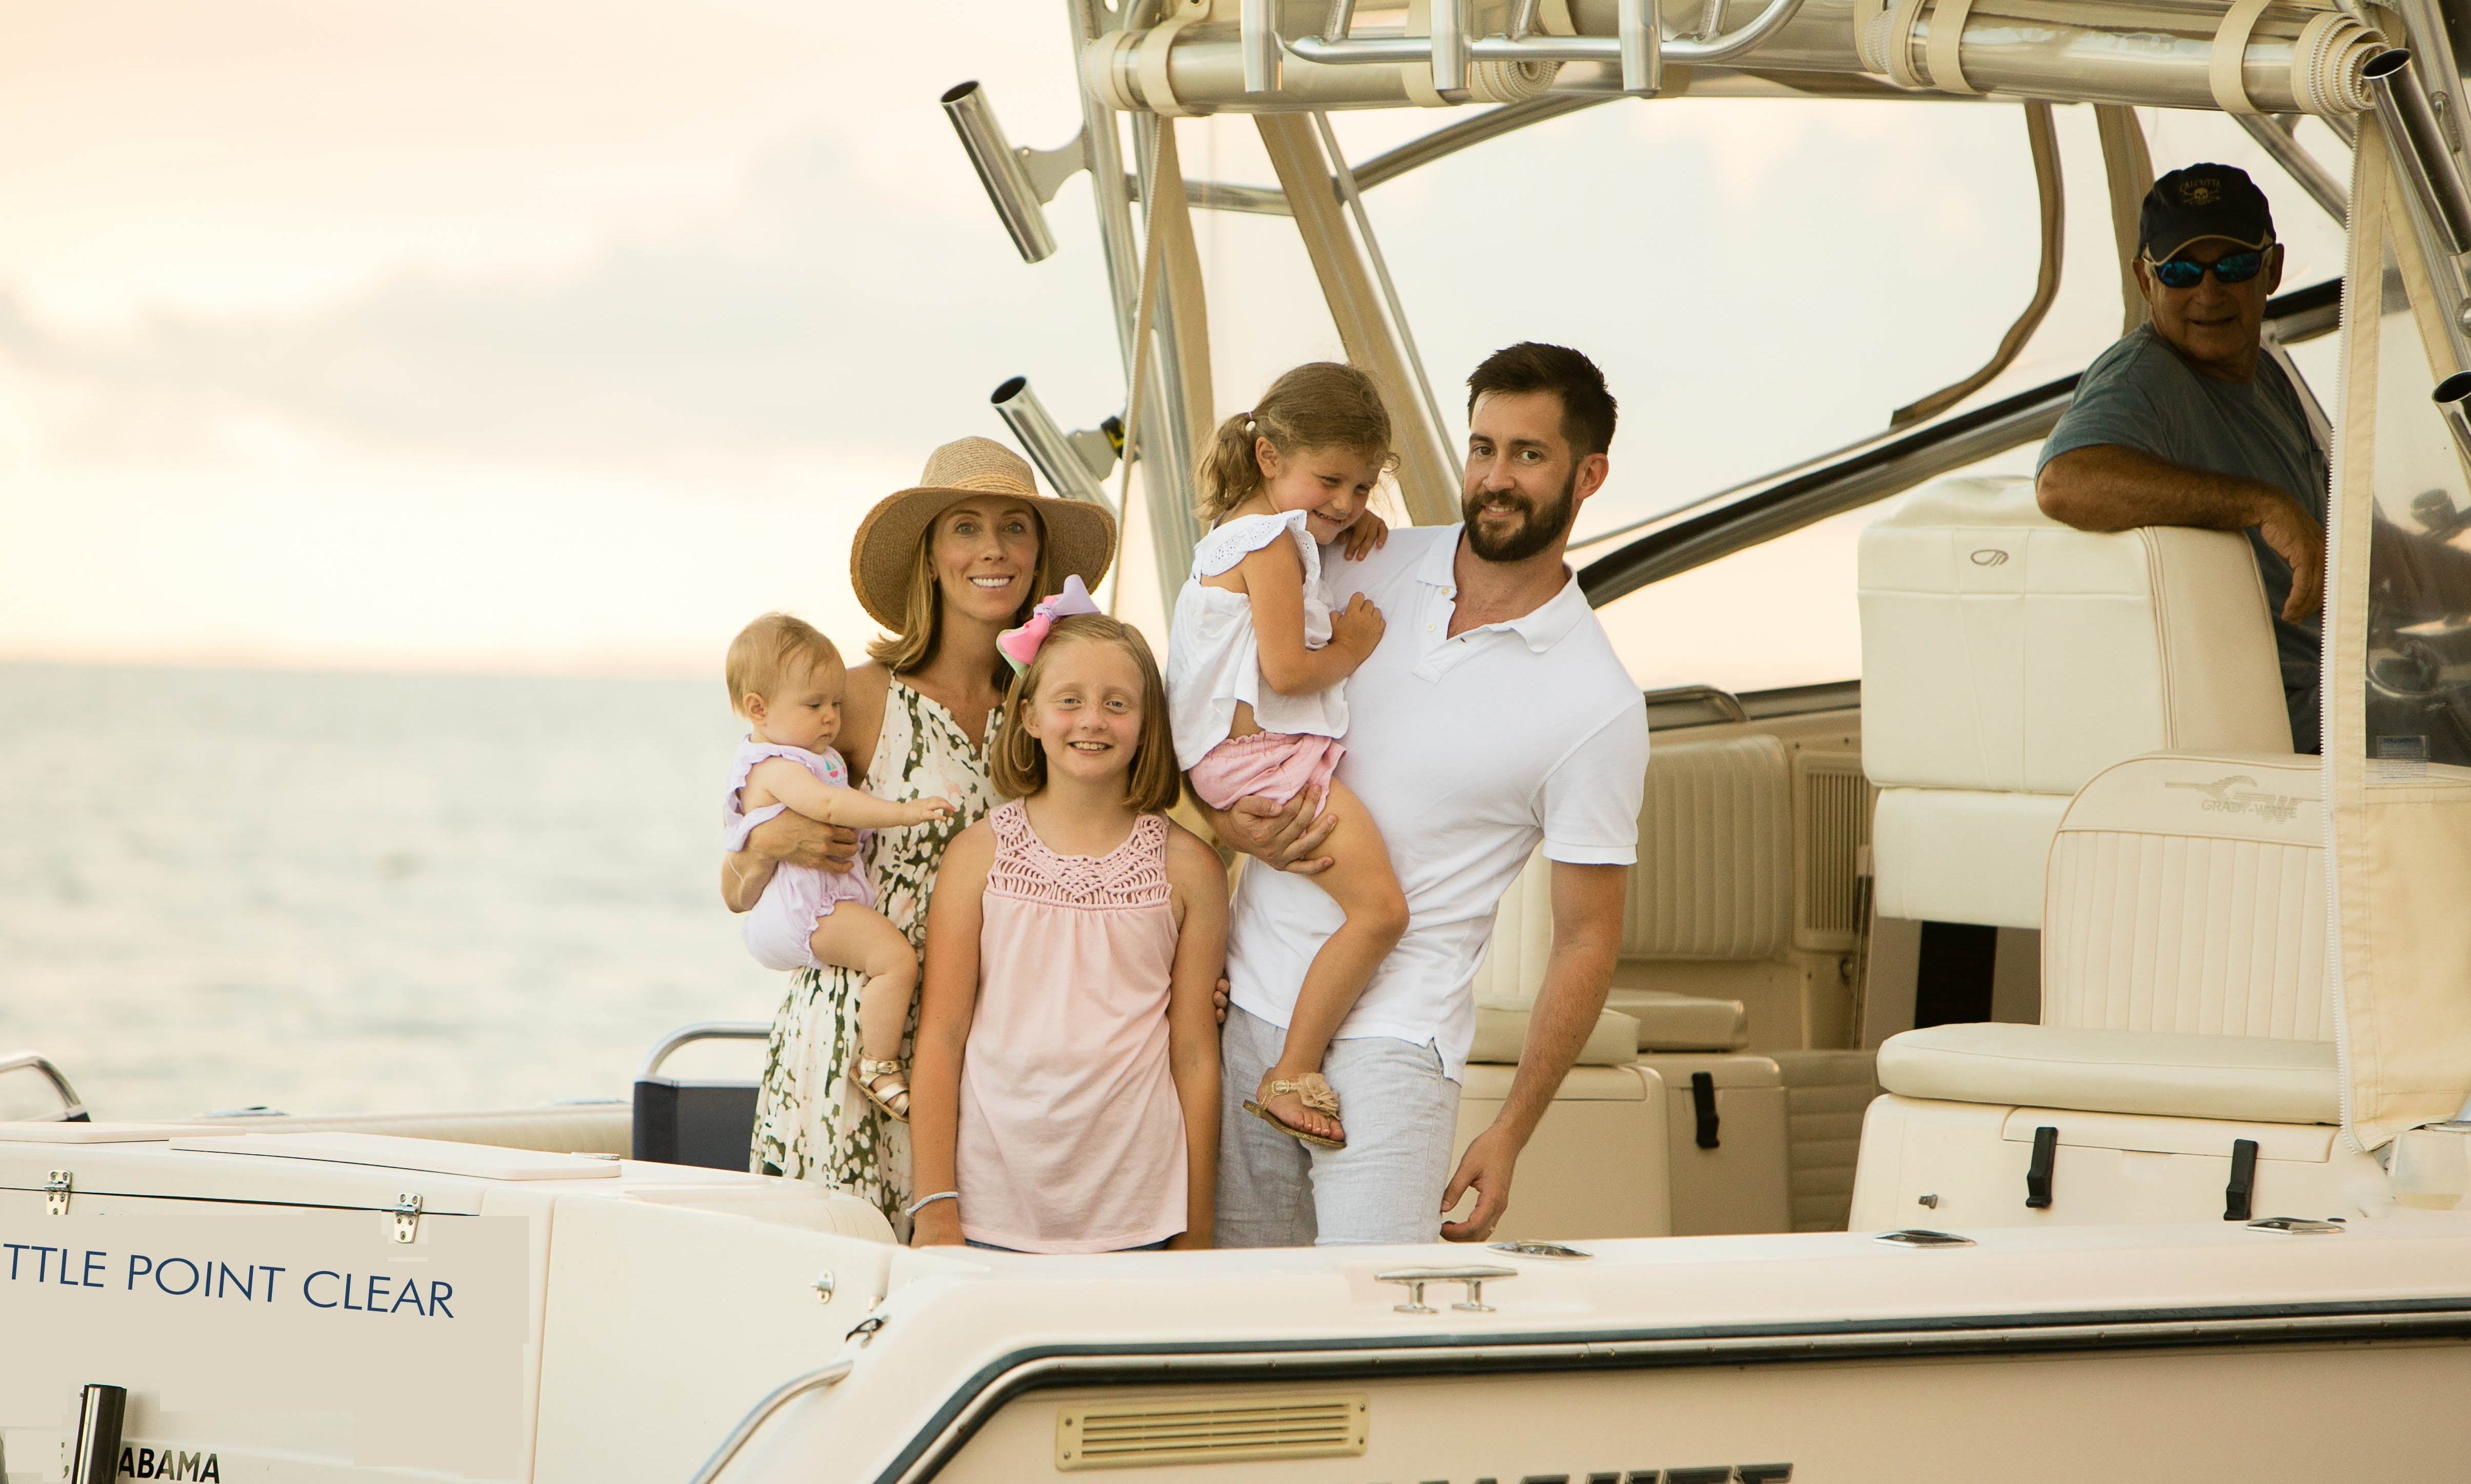 Enjoy a relaxing cruise or a fishing adventure in Fairhope, Alabama aboard a 33' Grady White Express